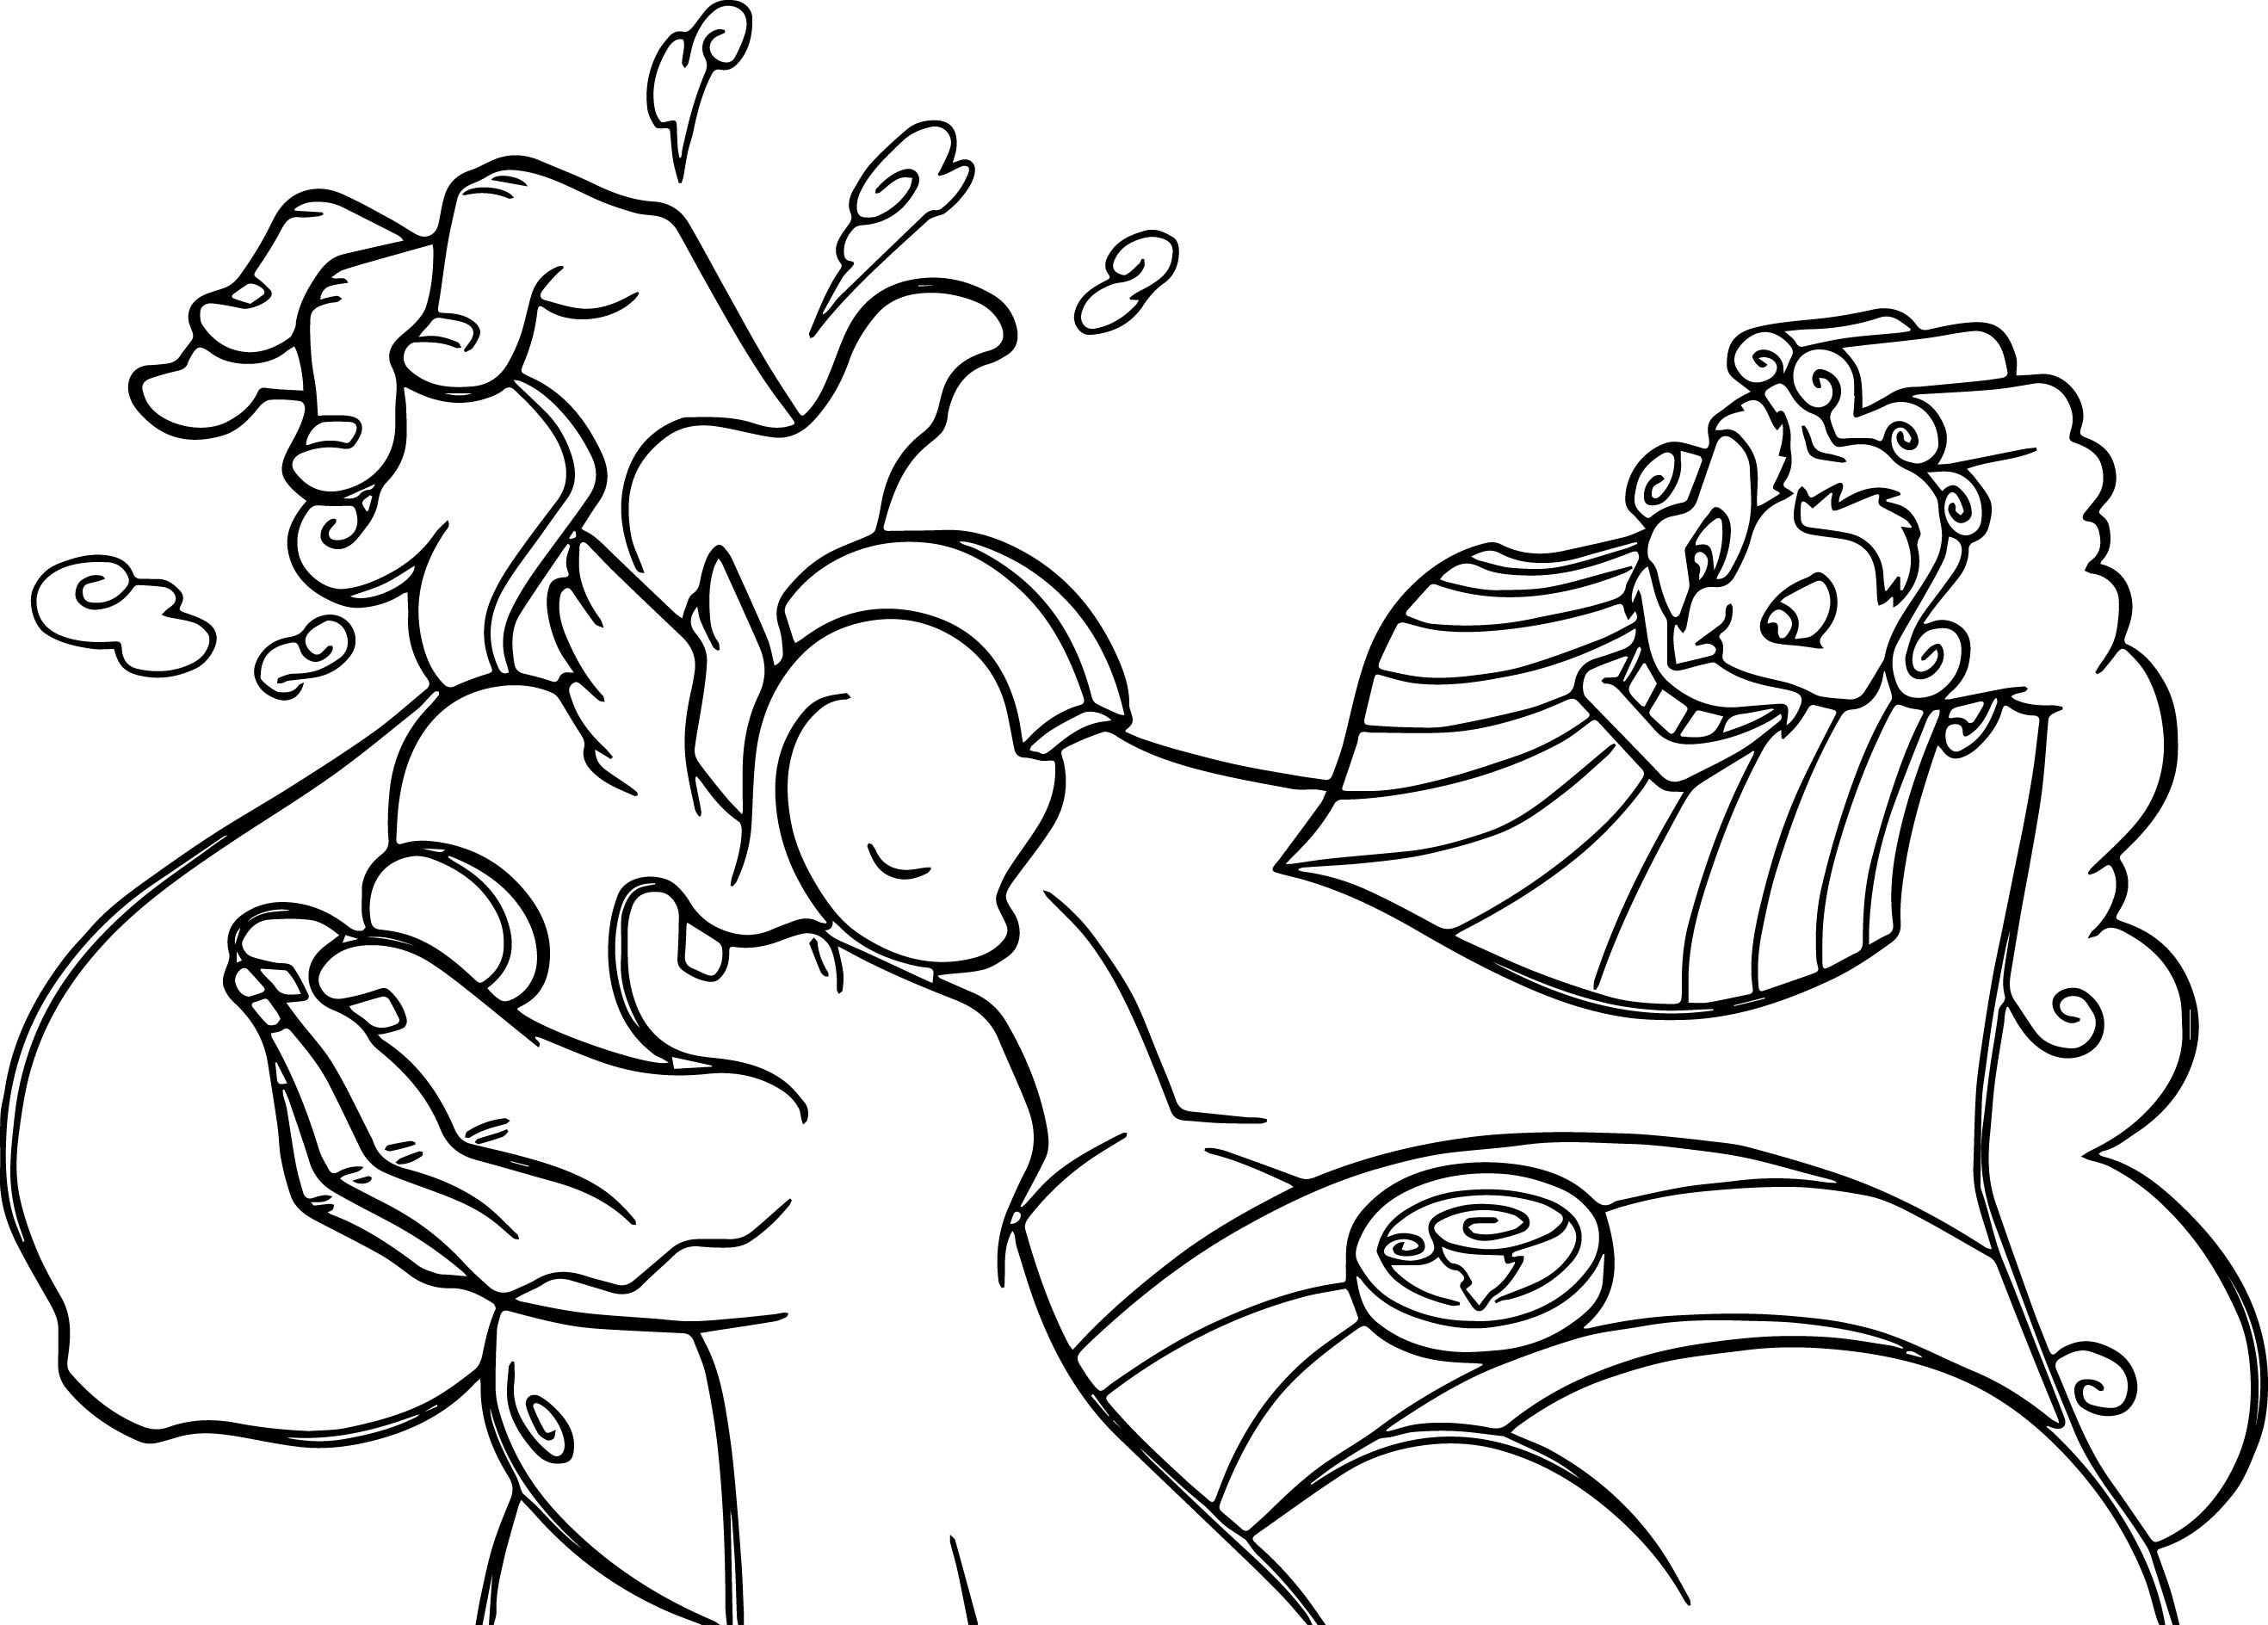 Nice Zeus Pegasus Coloring Pages Coloring Pages Coloring Pages For Boys Zeus